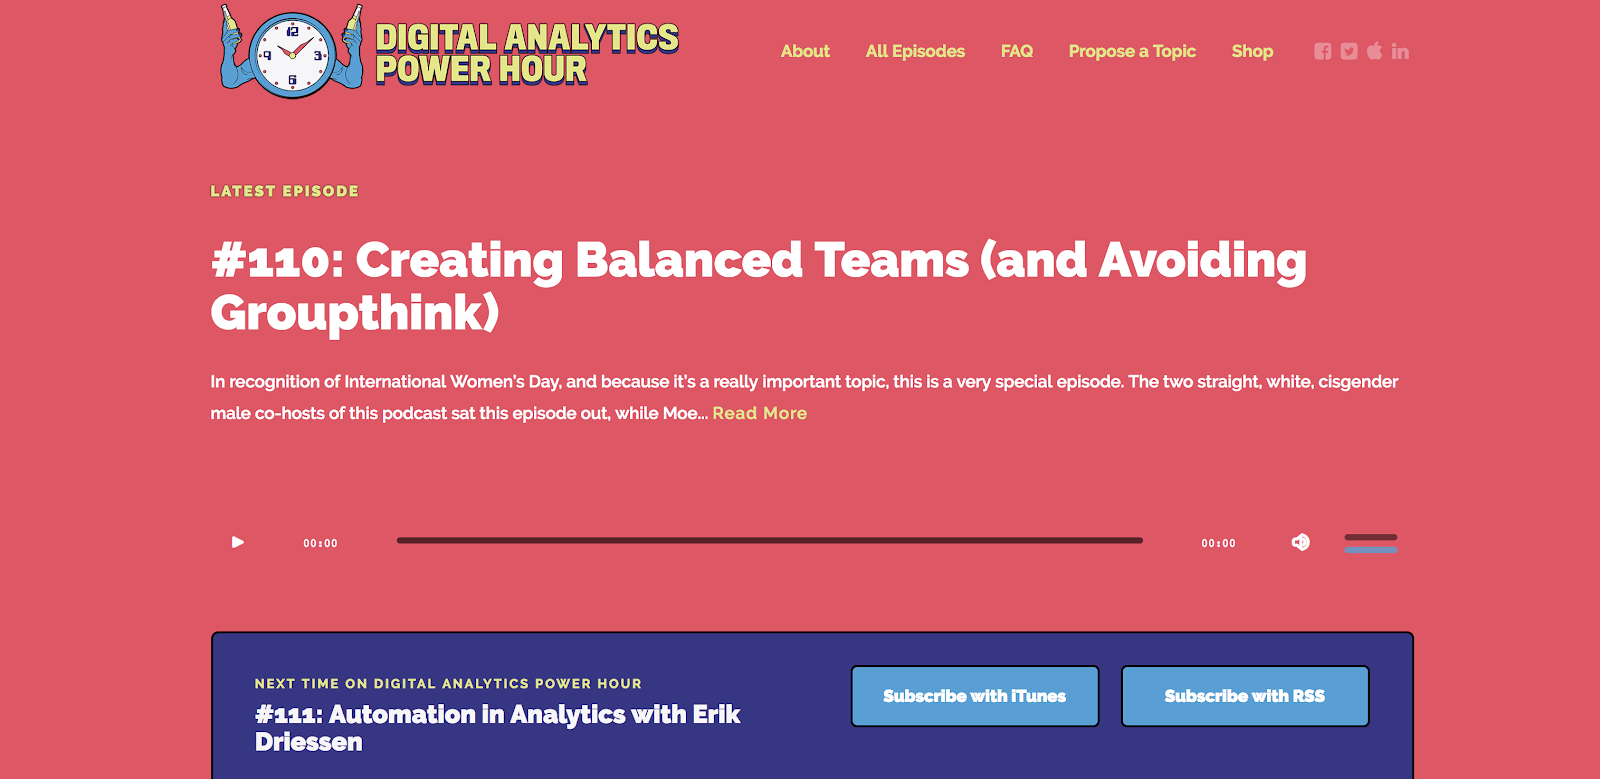 Digital Analytics Power Hour